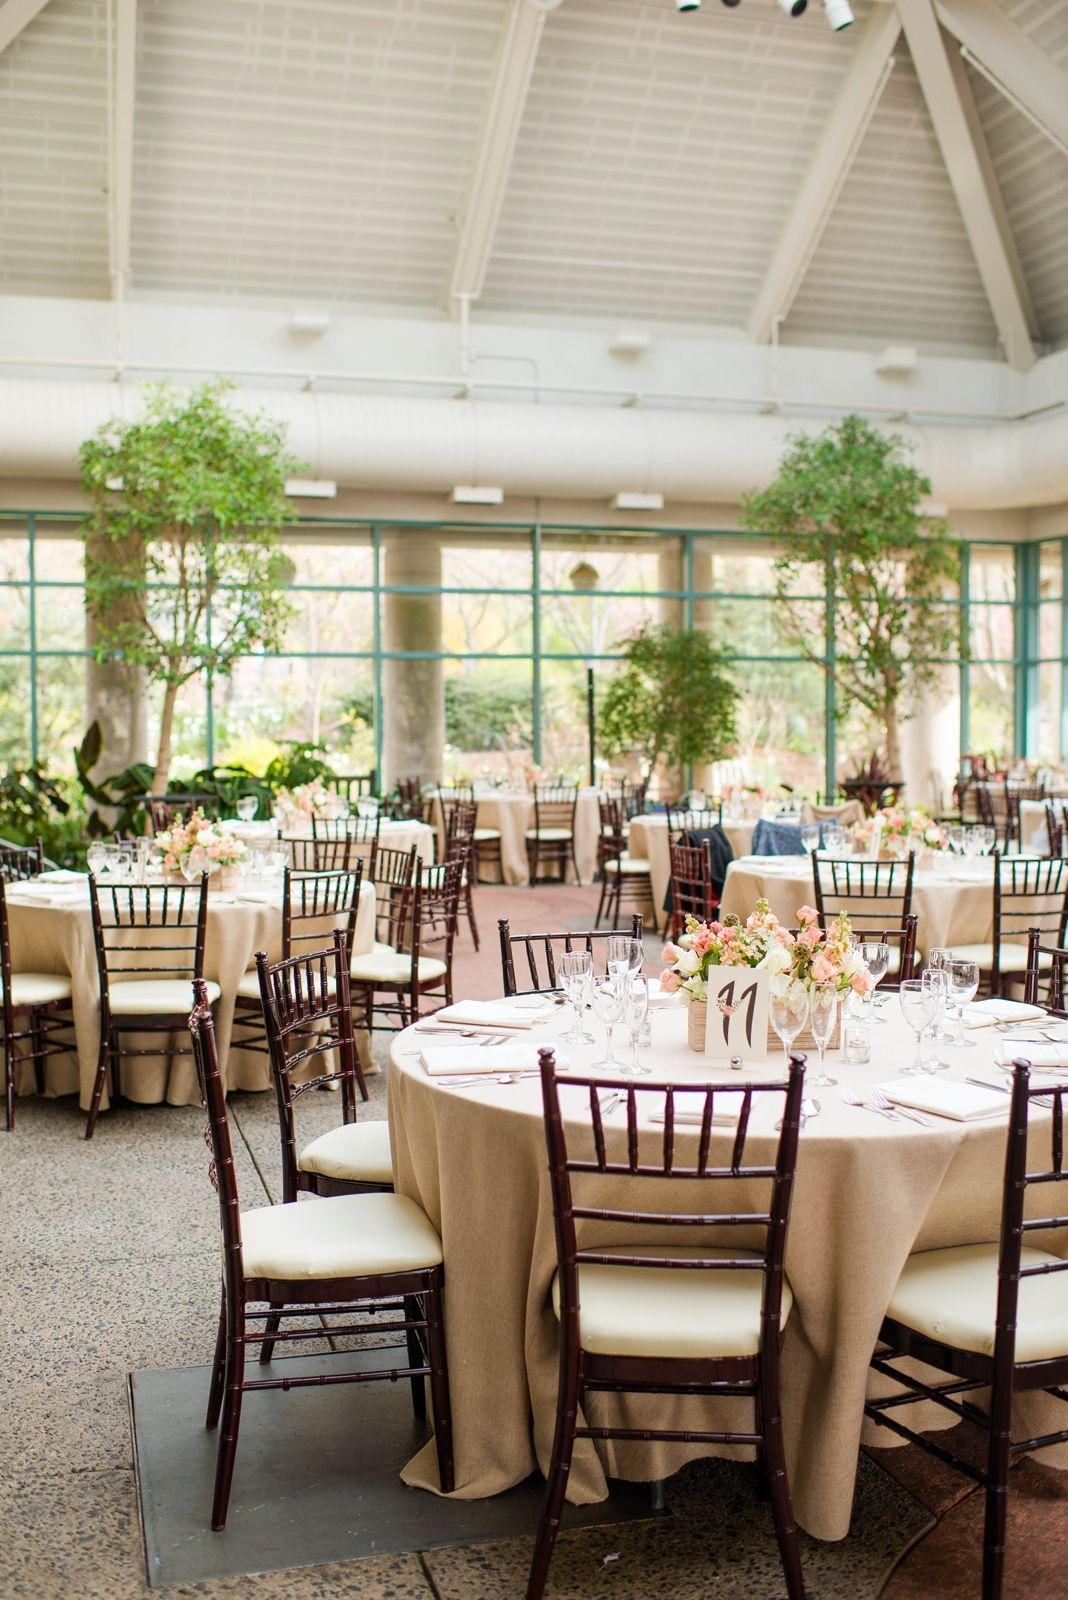 The Vault Curated Refined Wedding Inspiration Northern Virginia Wedding Venues Virginia Wedding Venues Botanical Gardens Wedding